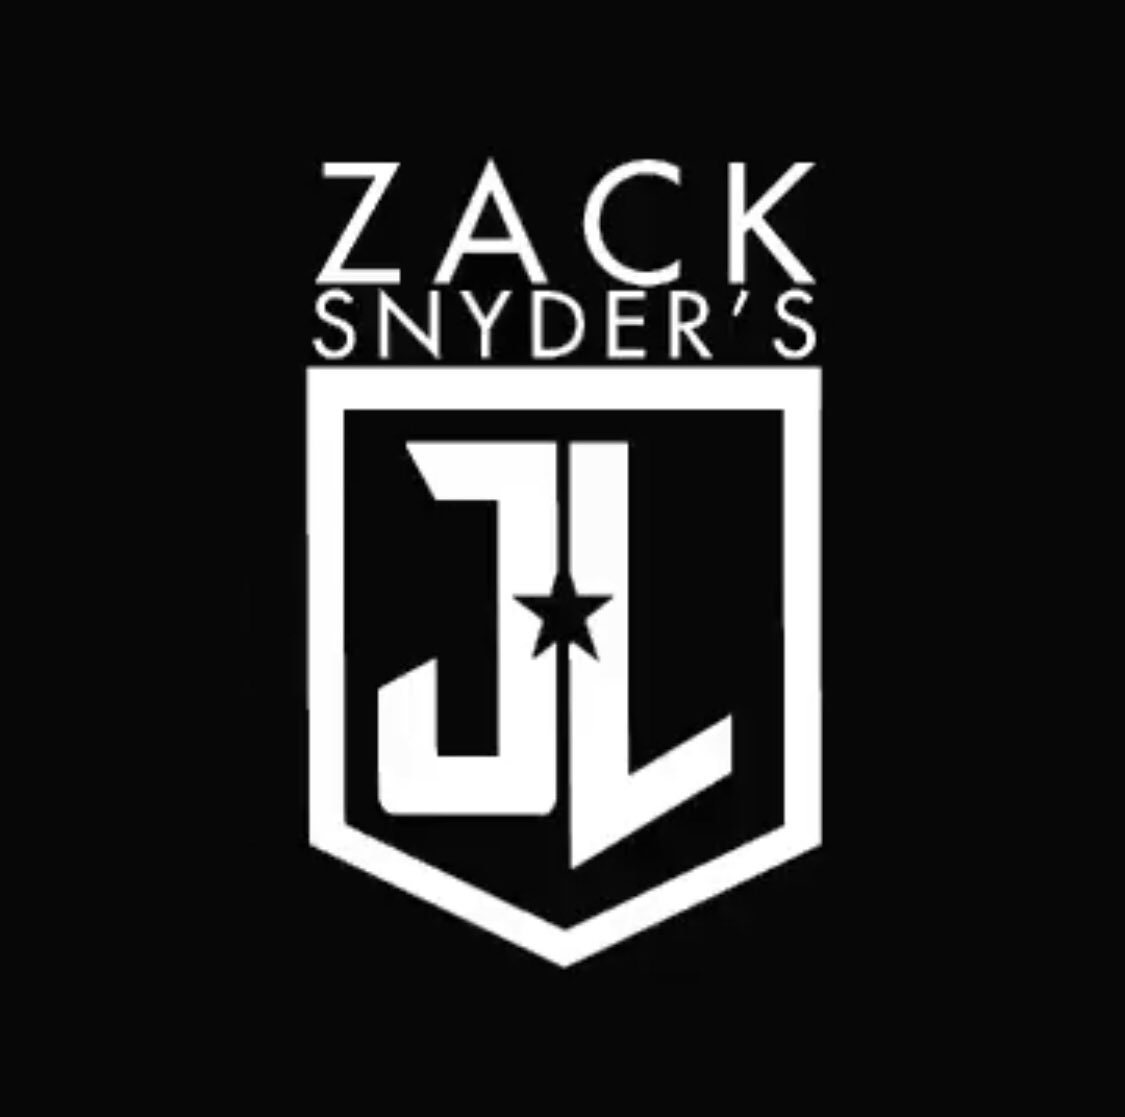 So close to 2,500. If we can somehow get to 3K followers, I'll share a quote Zack gave me for the book. #ReleaseTheSnyderCut #ZackSnydersJusticeLeague<br>http://pic.twitter.com/HYe8OjG9Vu